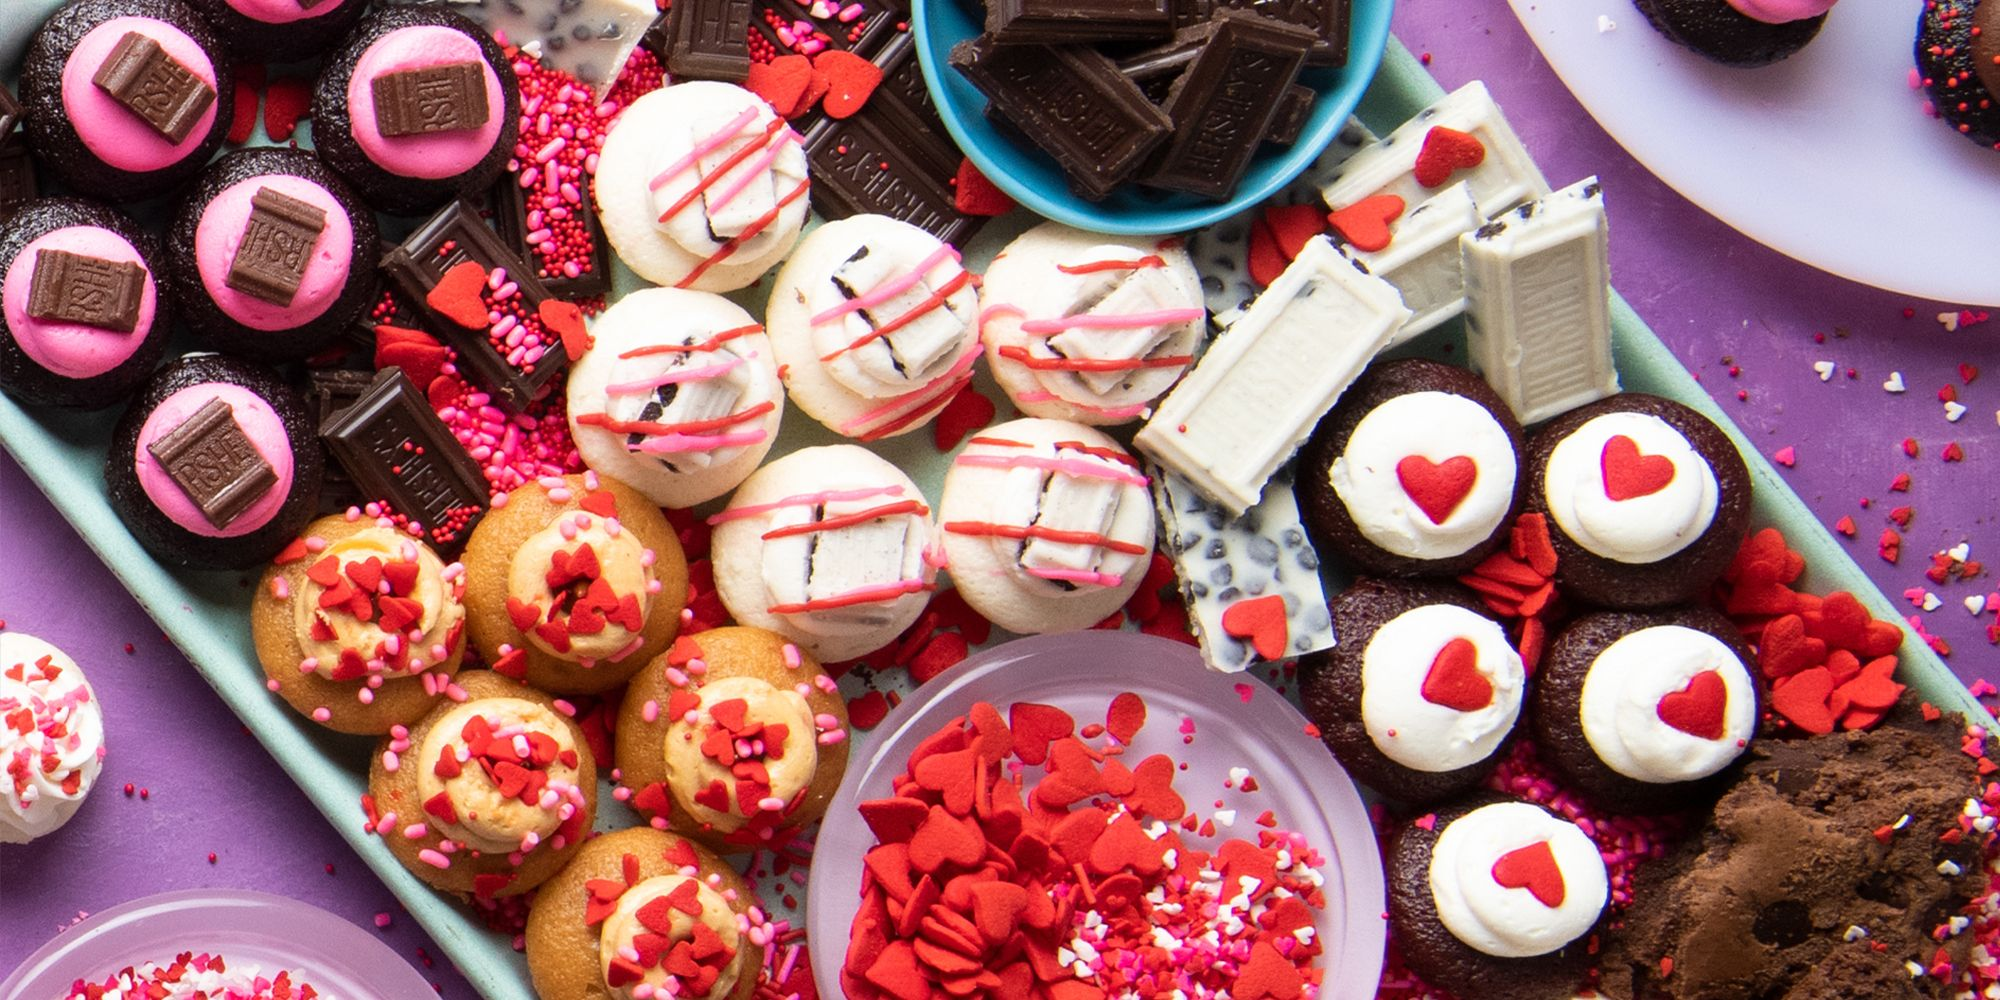 Eat Your Heart Out With These Best Food Gifts for Valentine's Day